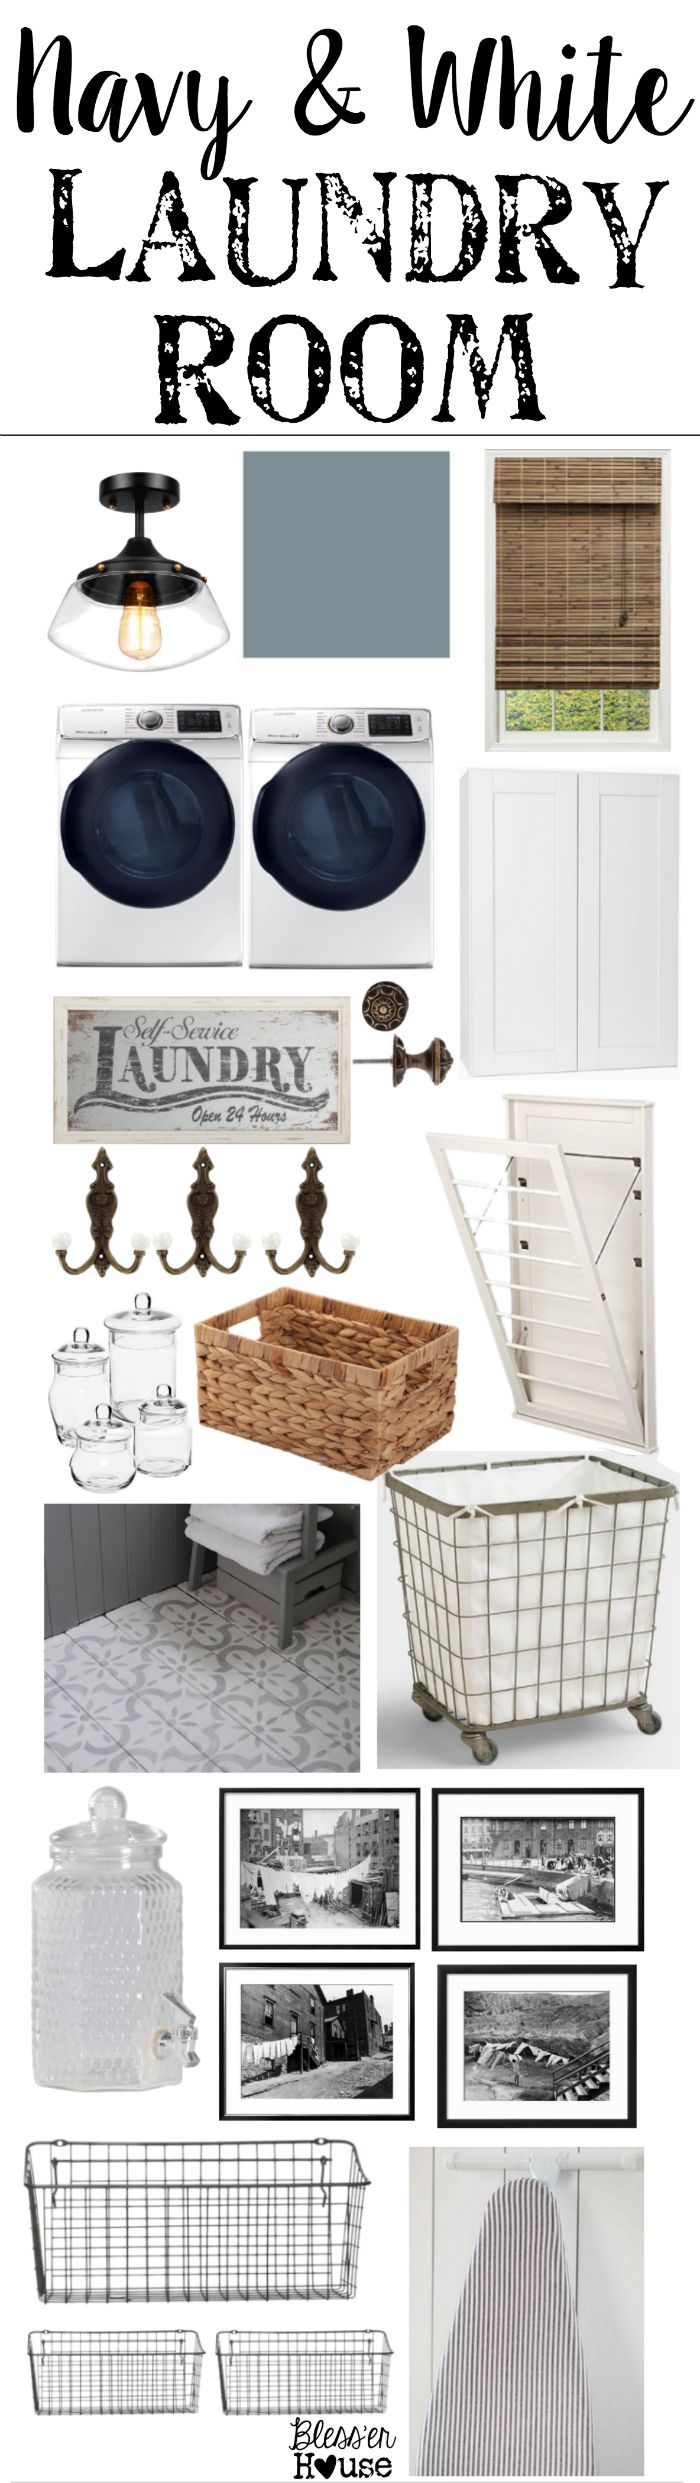 Navy and White Laundry Room Design Plans | blesserhouse.com - A laundry room design plan mood board featuring deep blues, bright whites, and vintage-inspired storage solutions on a tight budget.